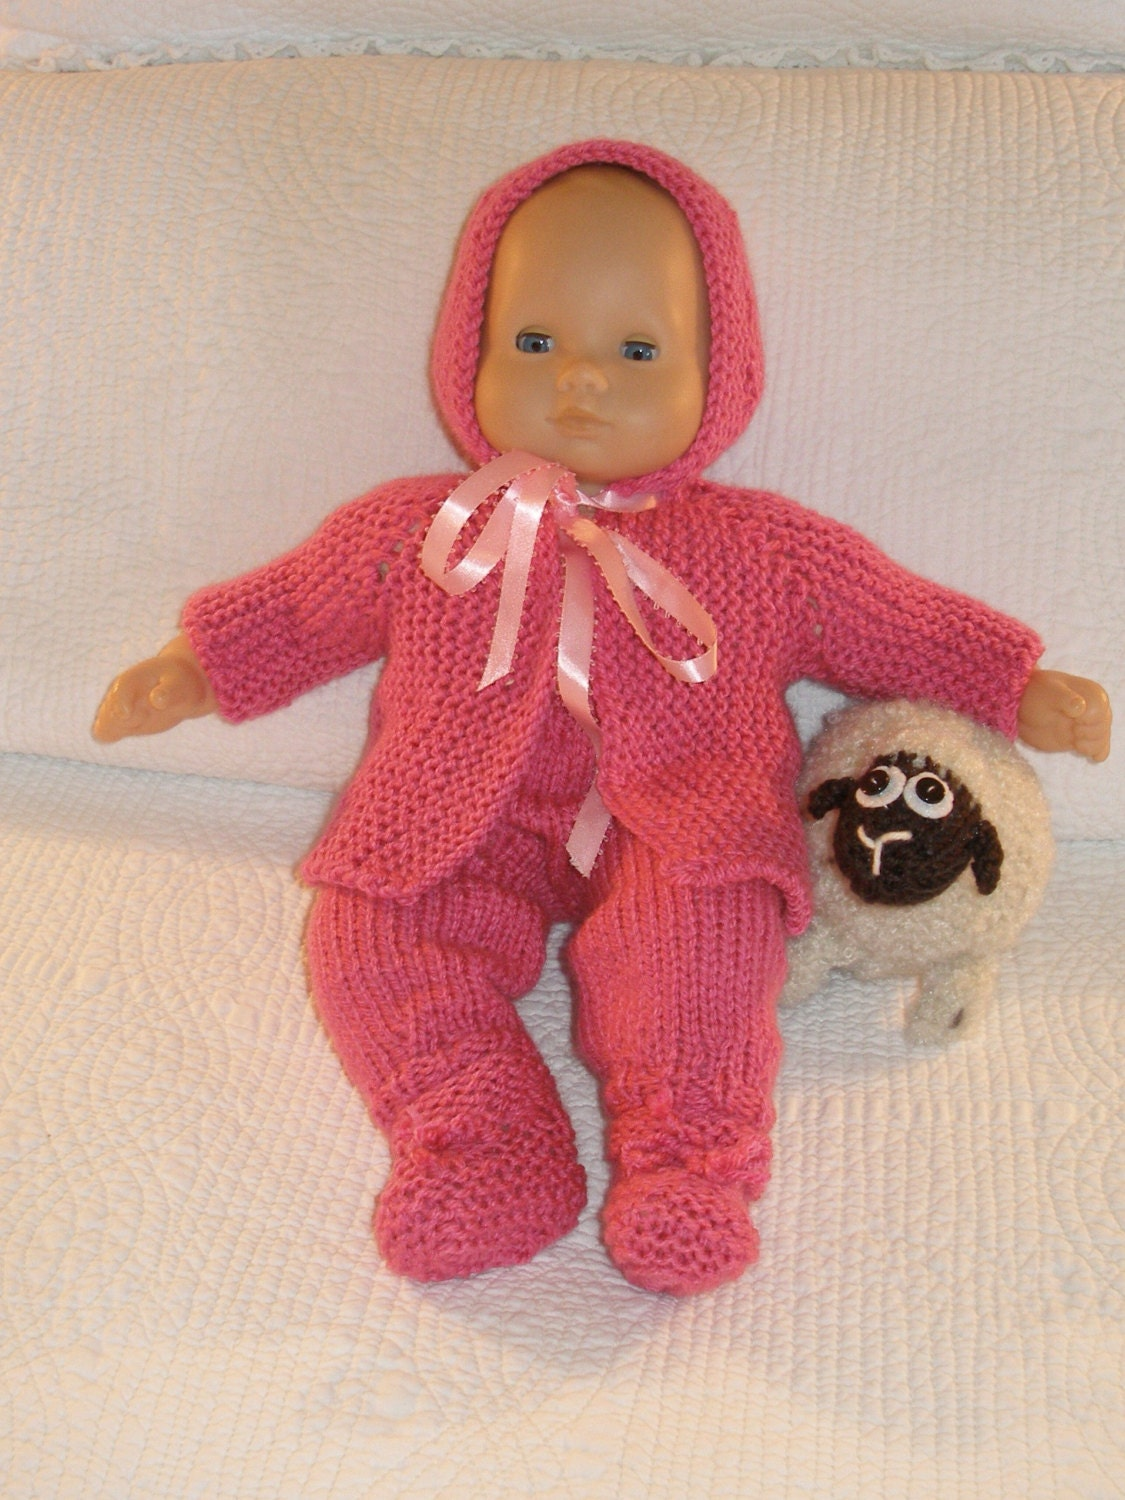 Knitting Baby Doll : Pretty in pink baby doll knitting pattern